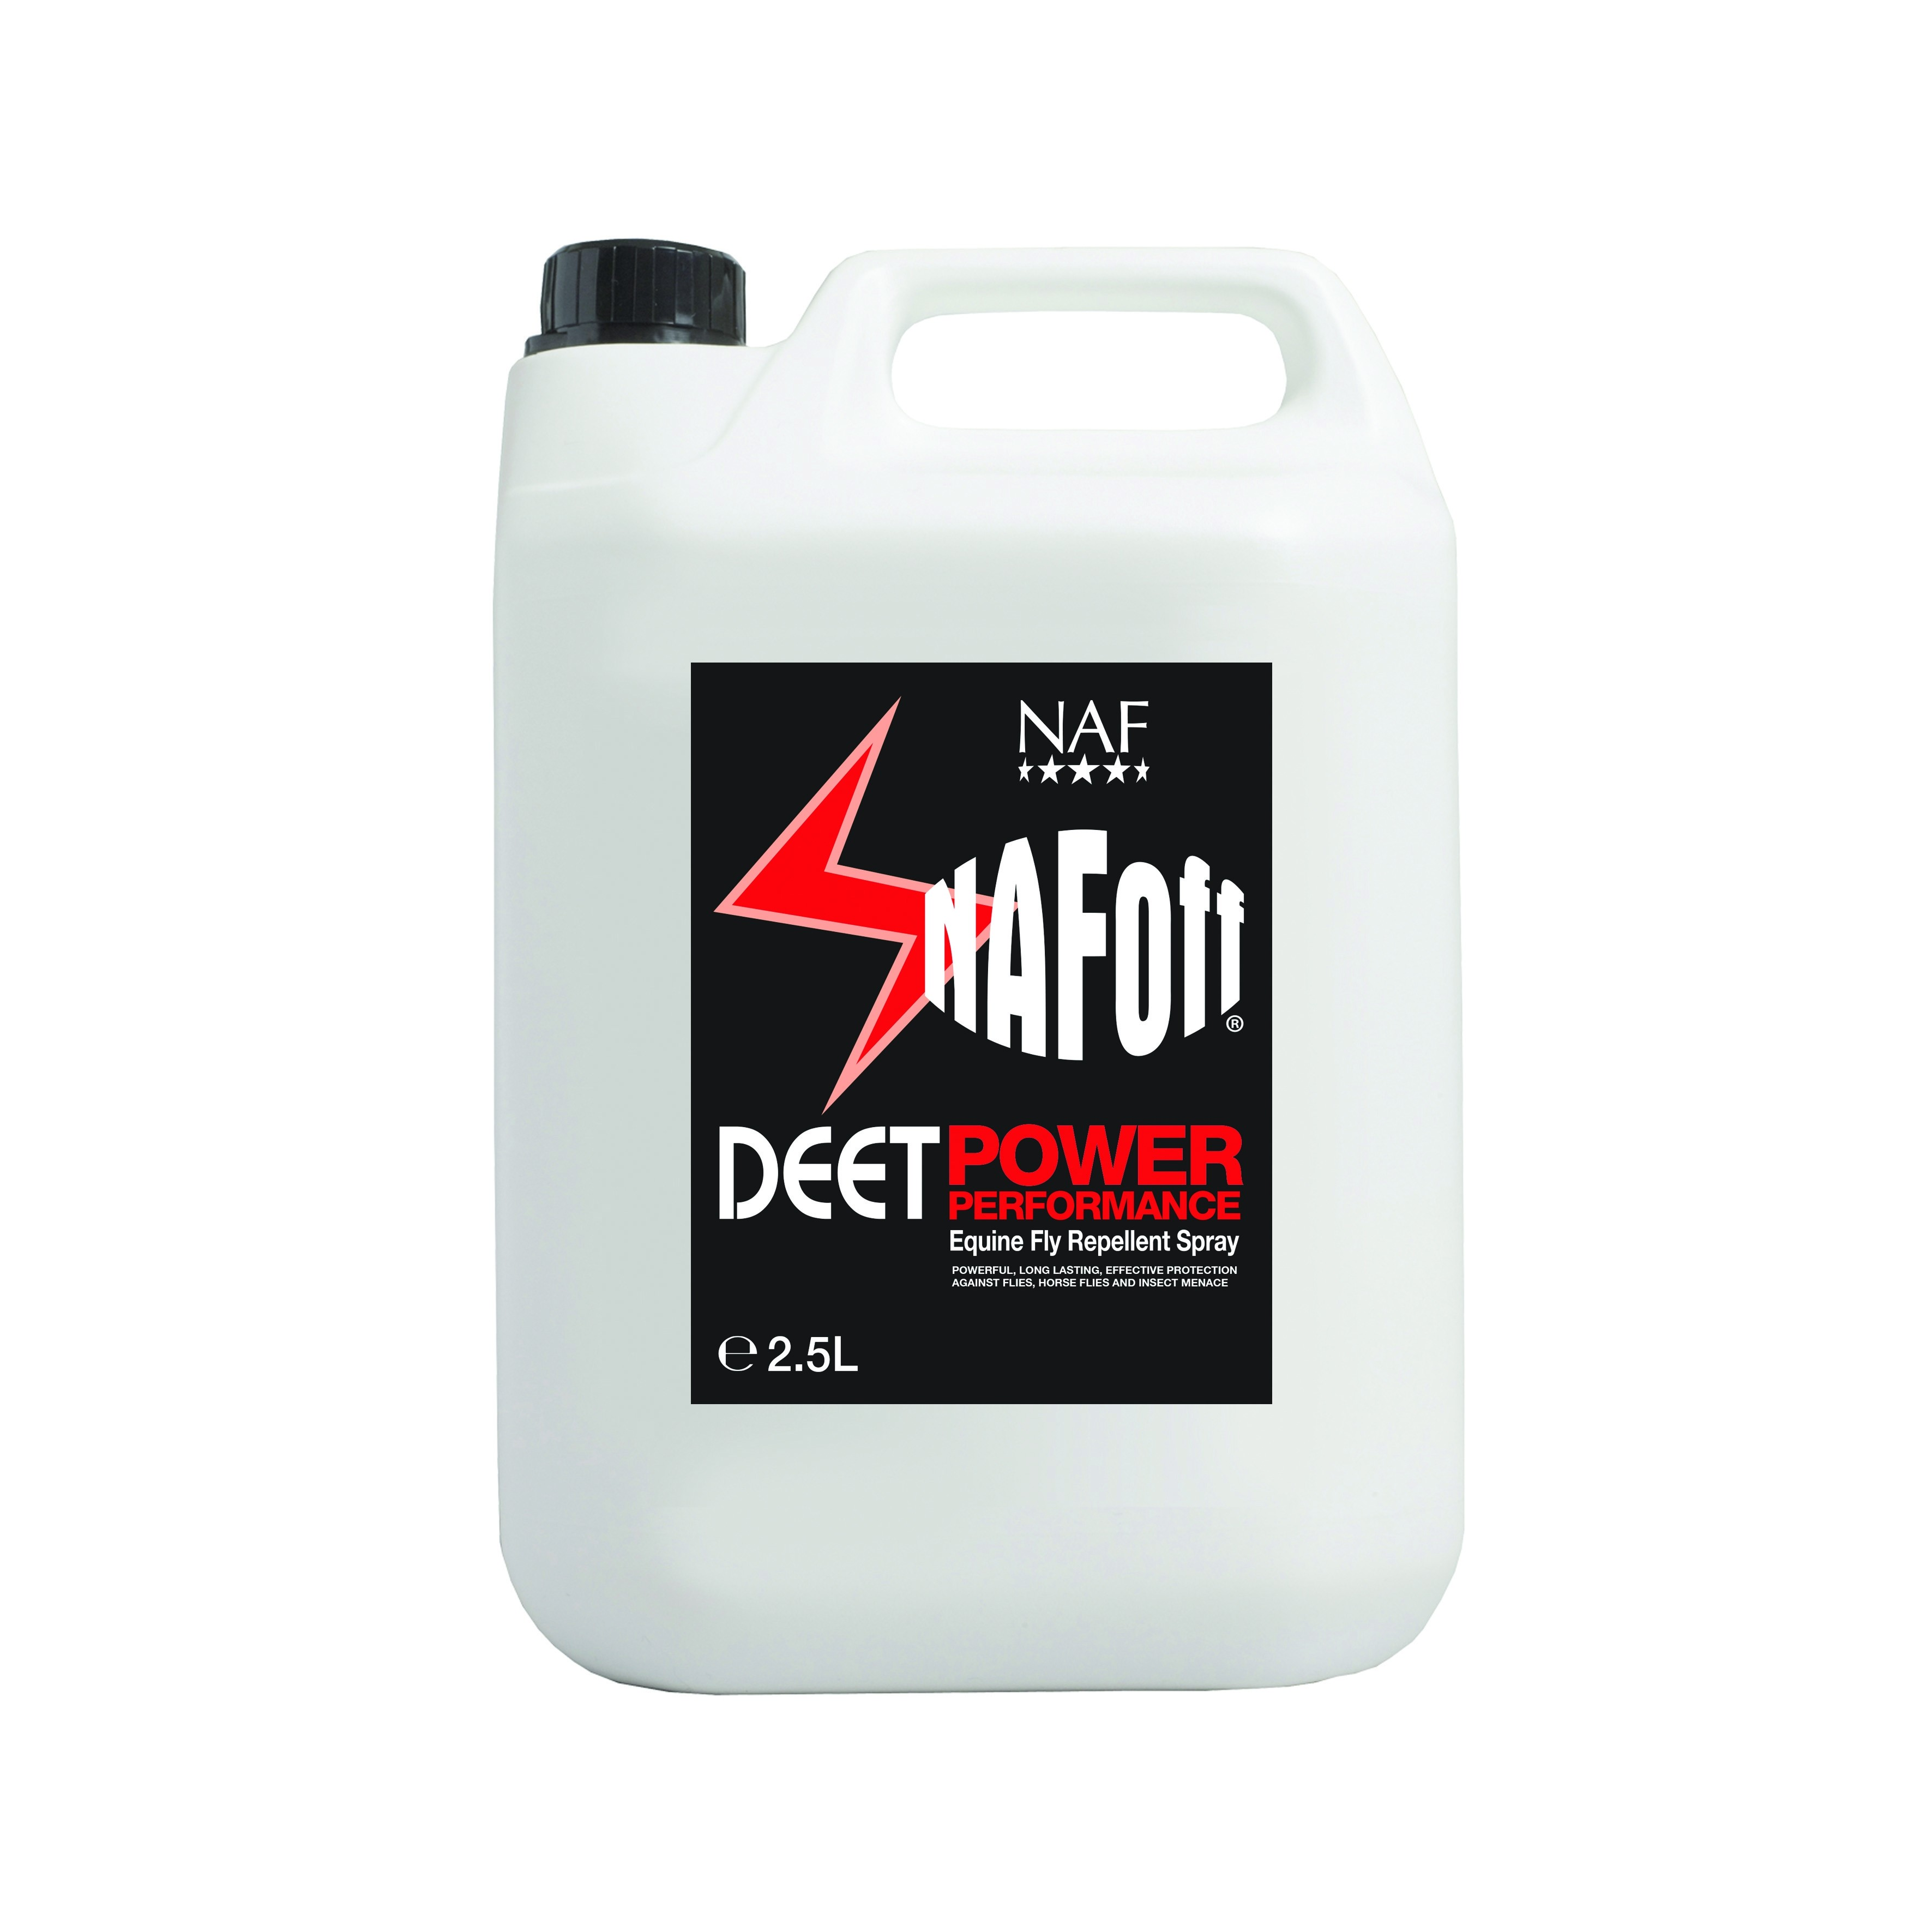 NAF Off Deet Power Fly Spray Refill  - Thomas Irving's equestrian and accessories store  NAF Off Deet Power Fly Spray Refill